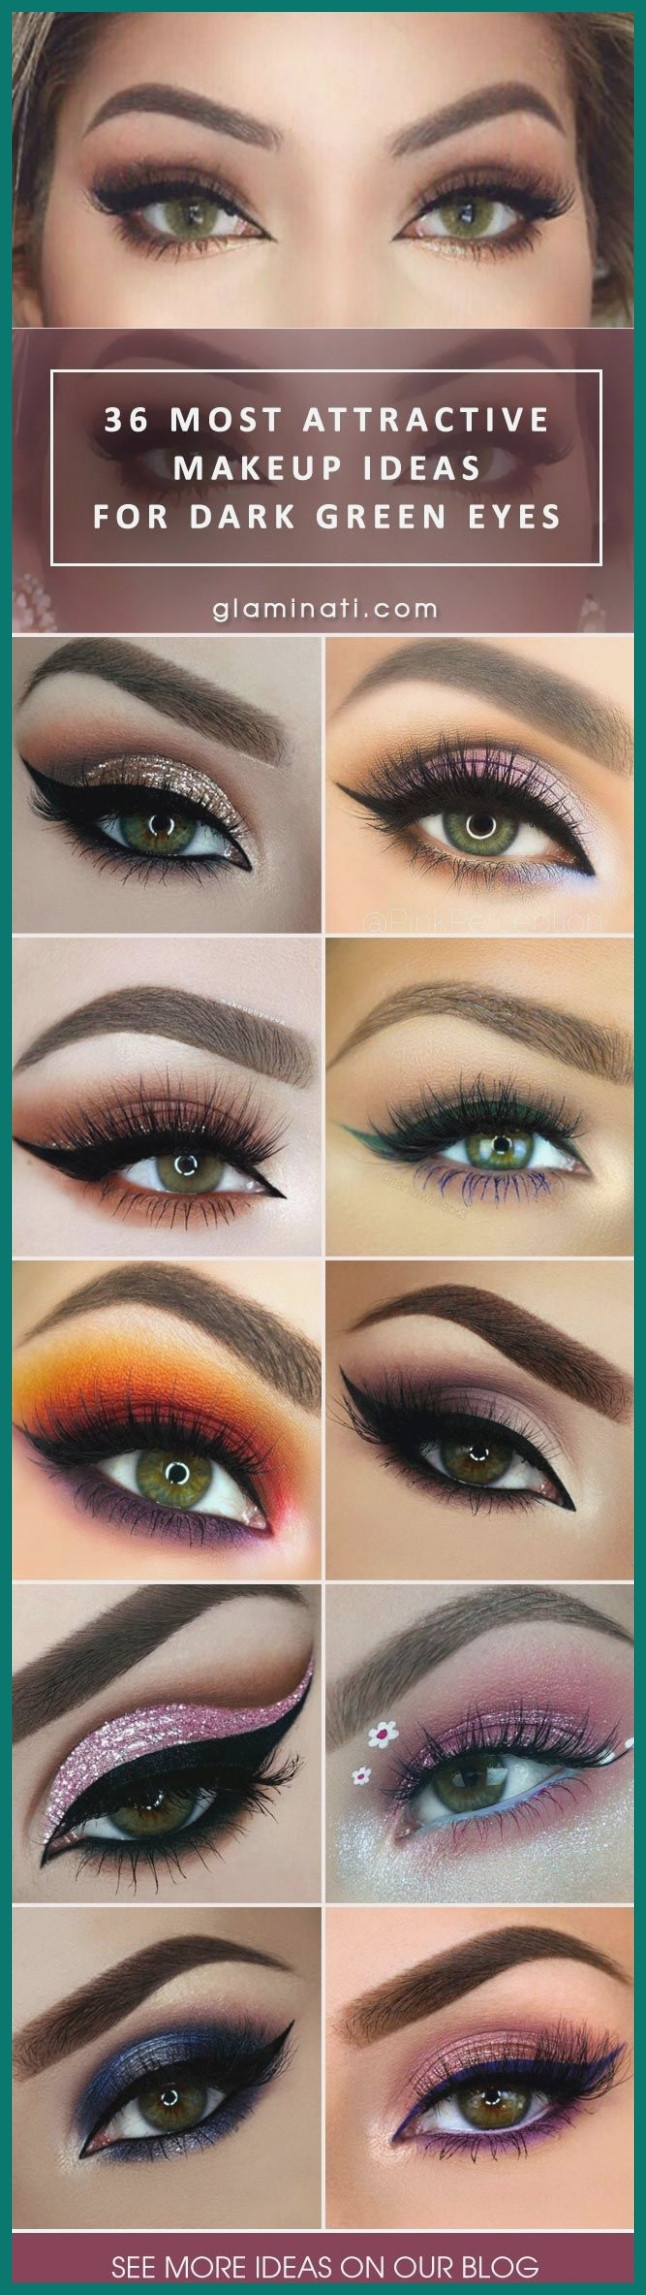 What Color Eyeshadow For Green Eyes And Blonde Hair 123627 inside Best Eyeshadow Color For Green Eyes And Blonde Hair